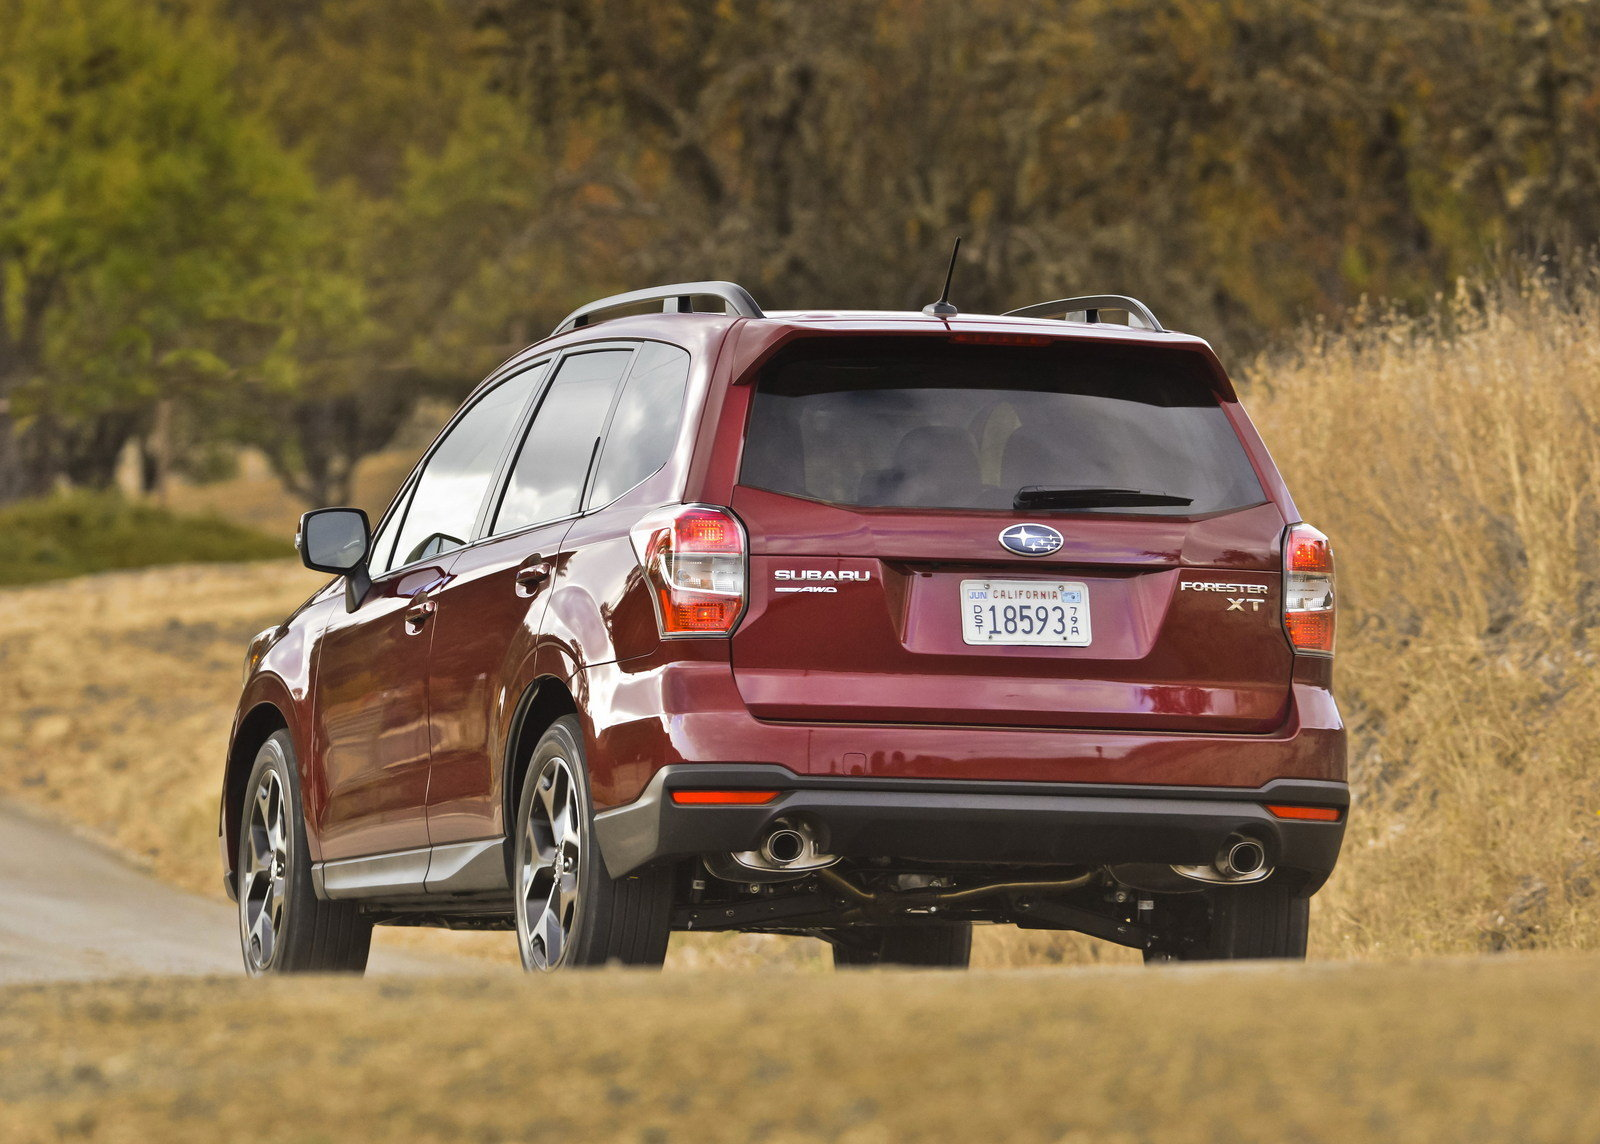 2015 - 2017 Subaru Forester - Picture 543790 | car review @ Top Speed